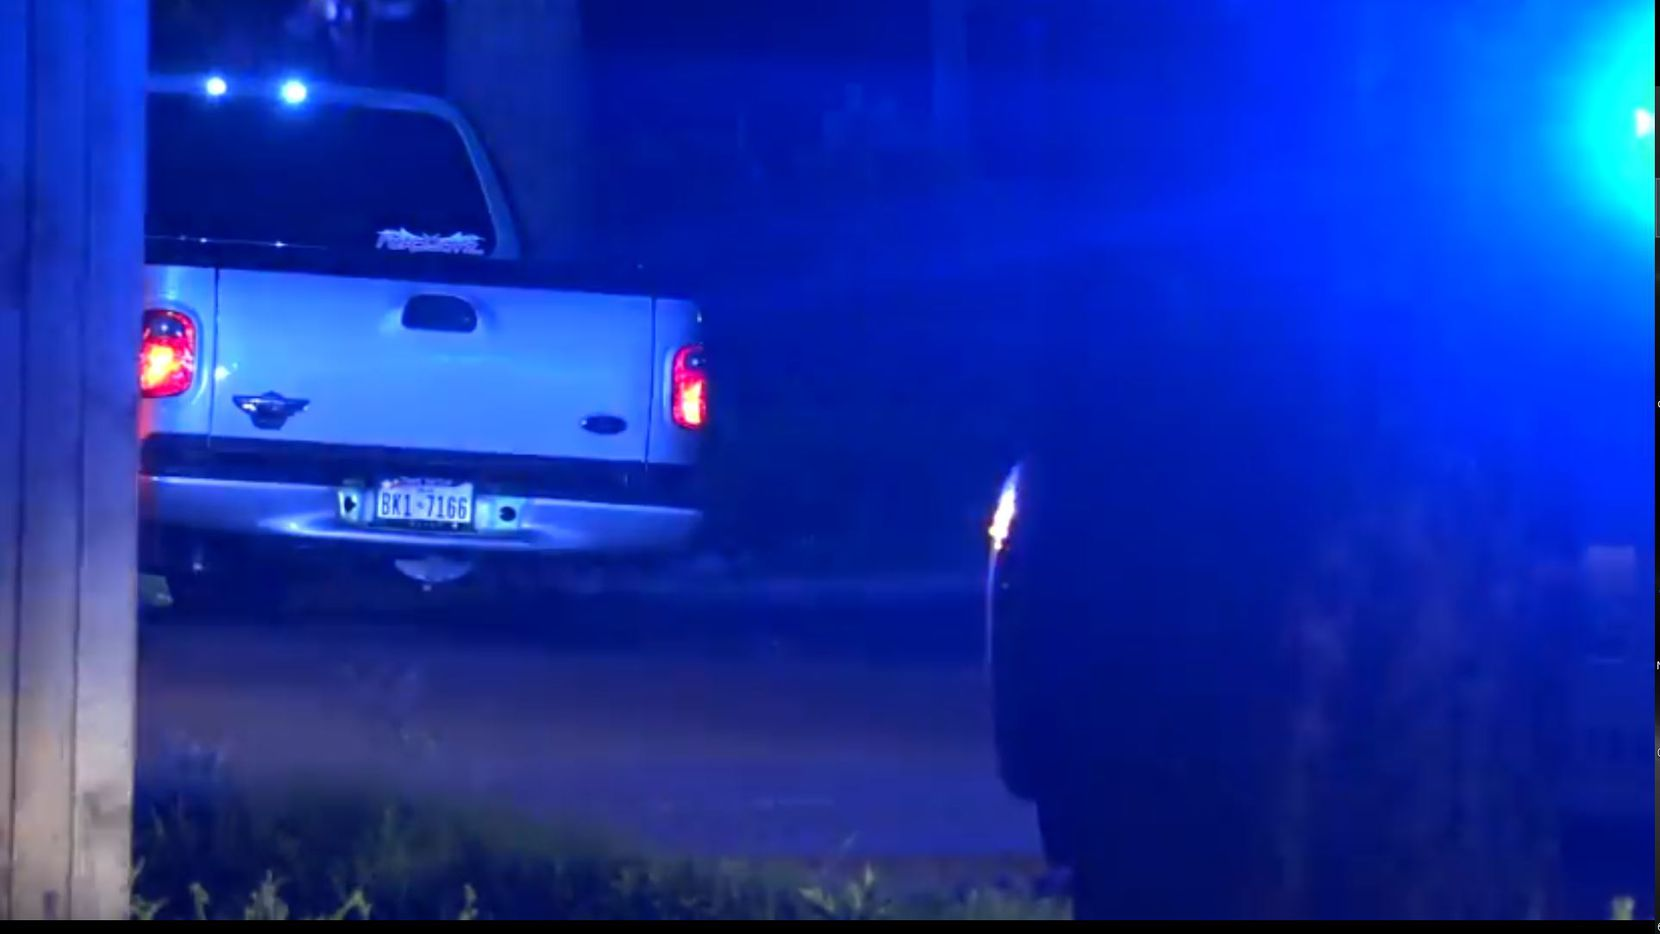 A man was arrested in West Dallas Thursday night after he led police on a 30-minute chase in a stolen Ford pickup truck, police said.